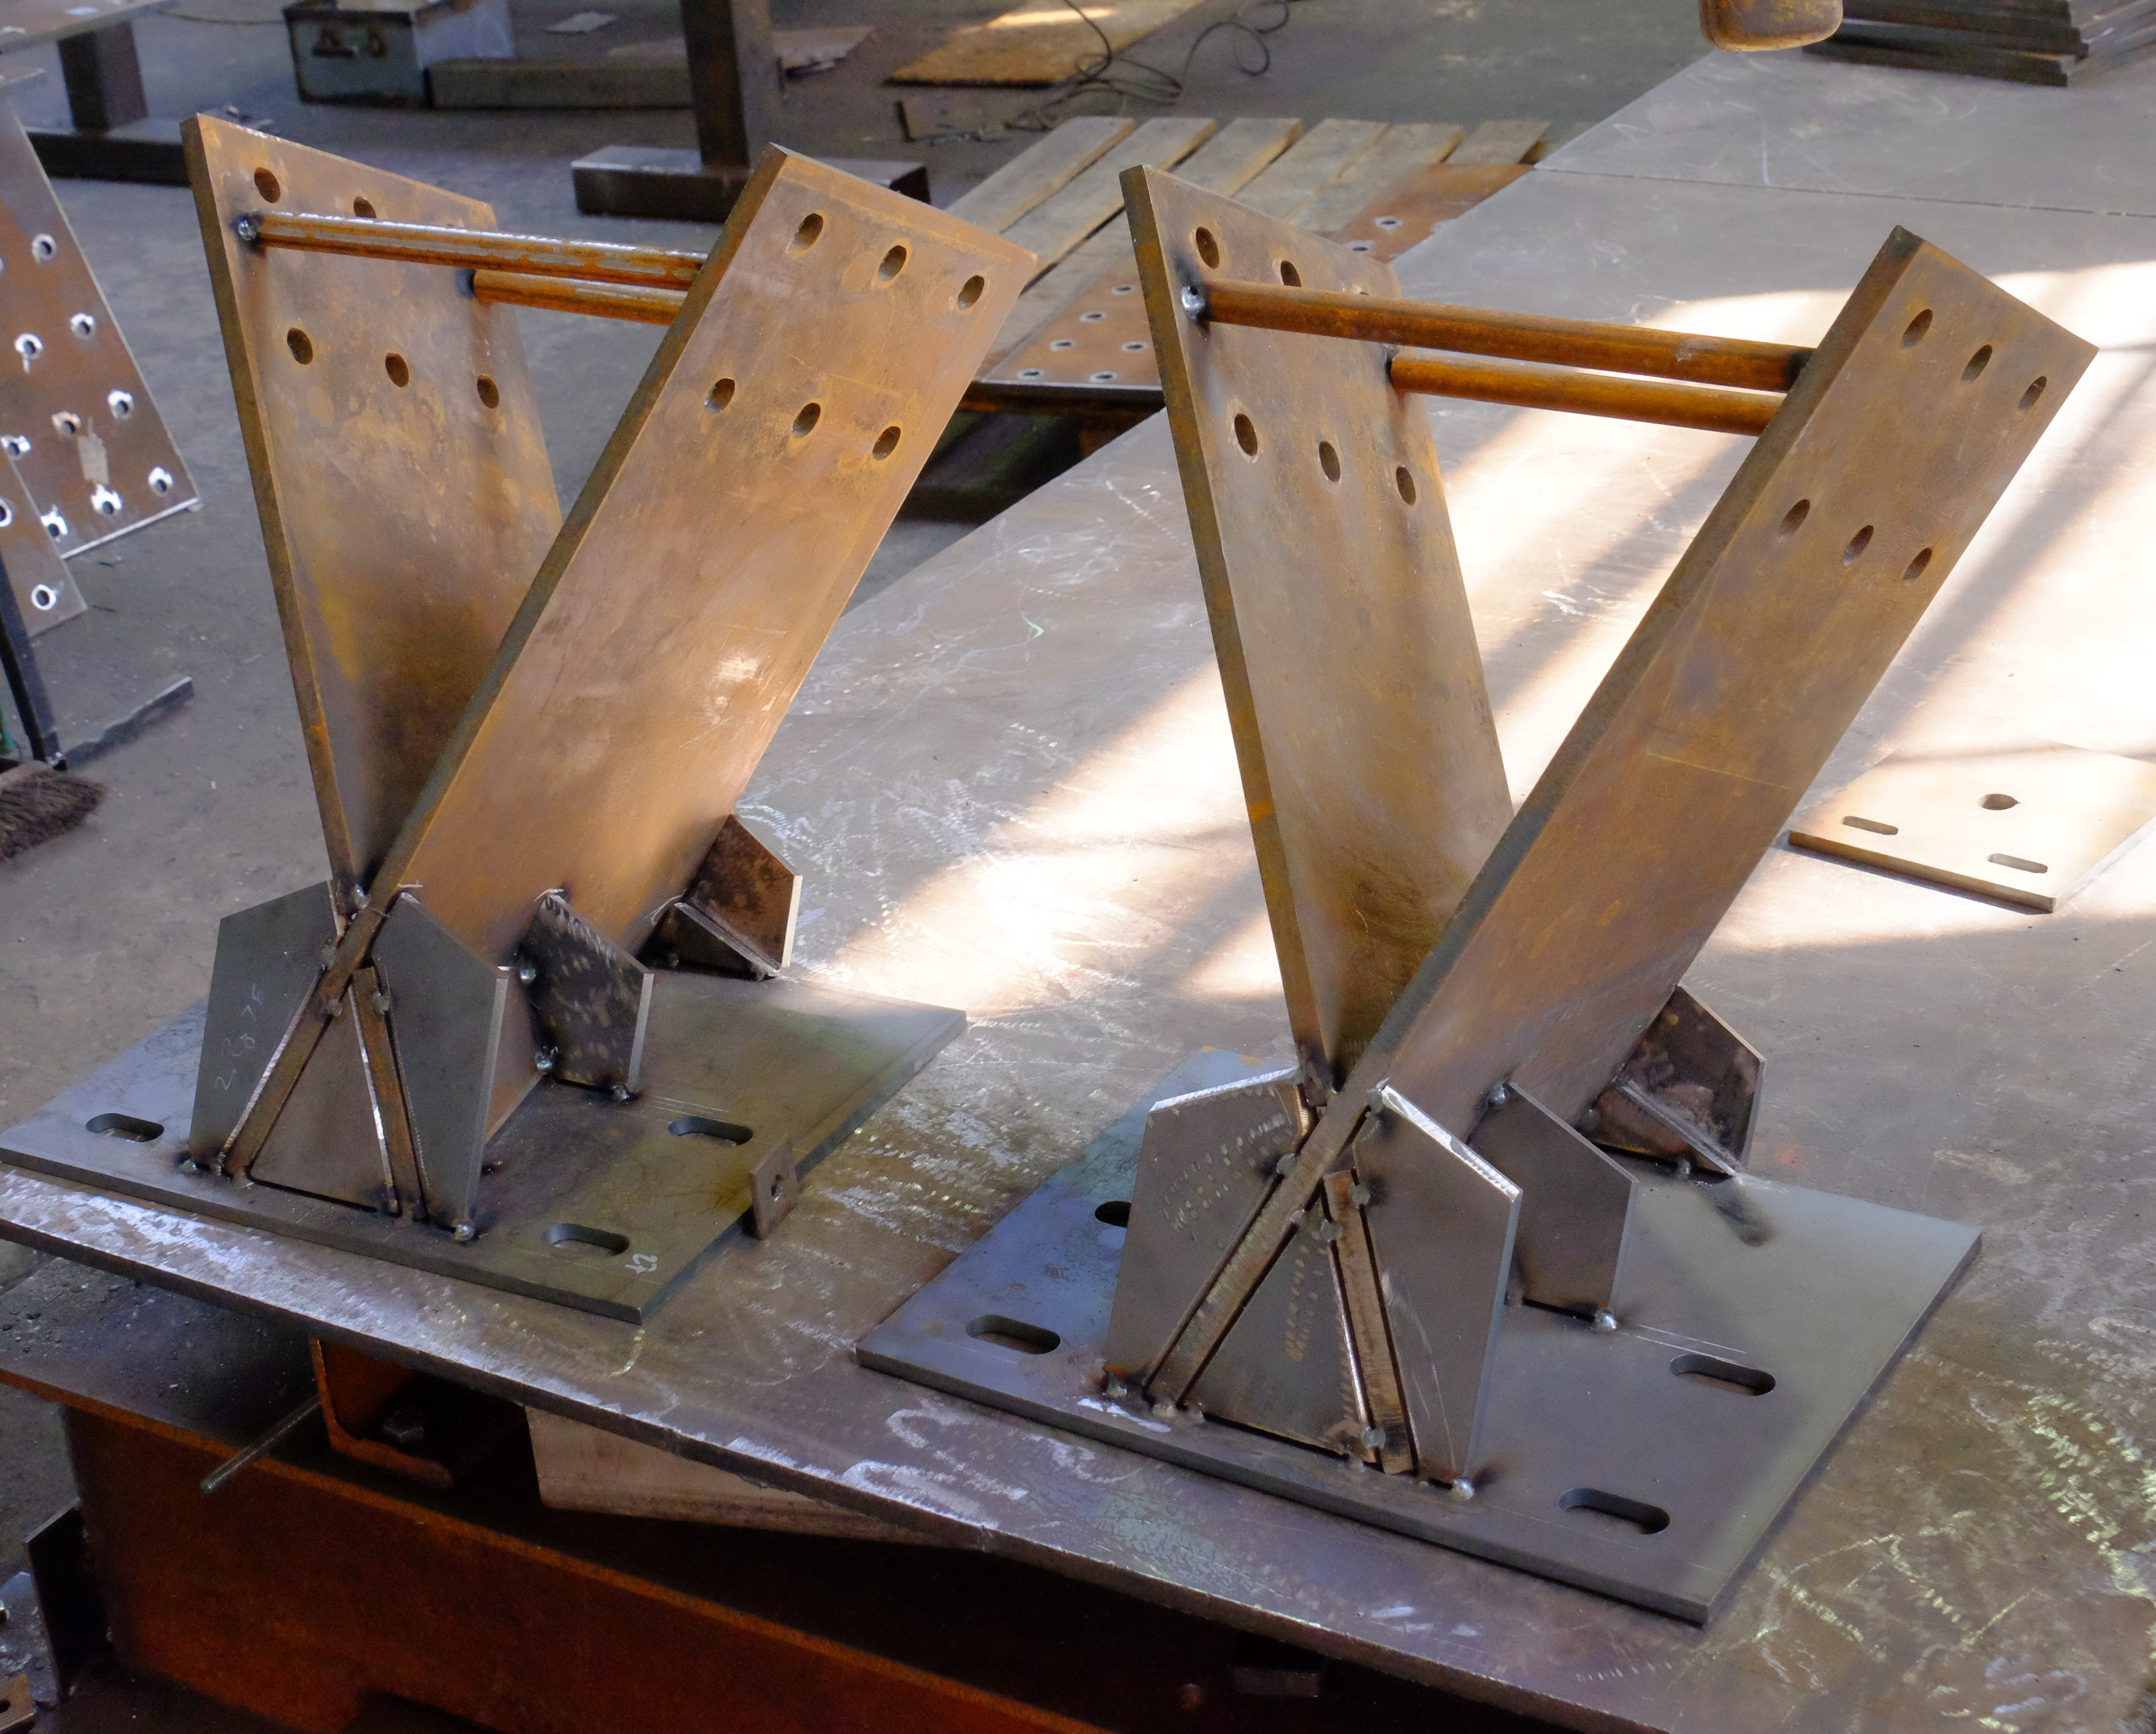 Tacked up fabrication awaiting welding